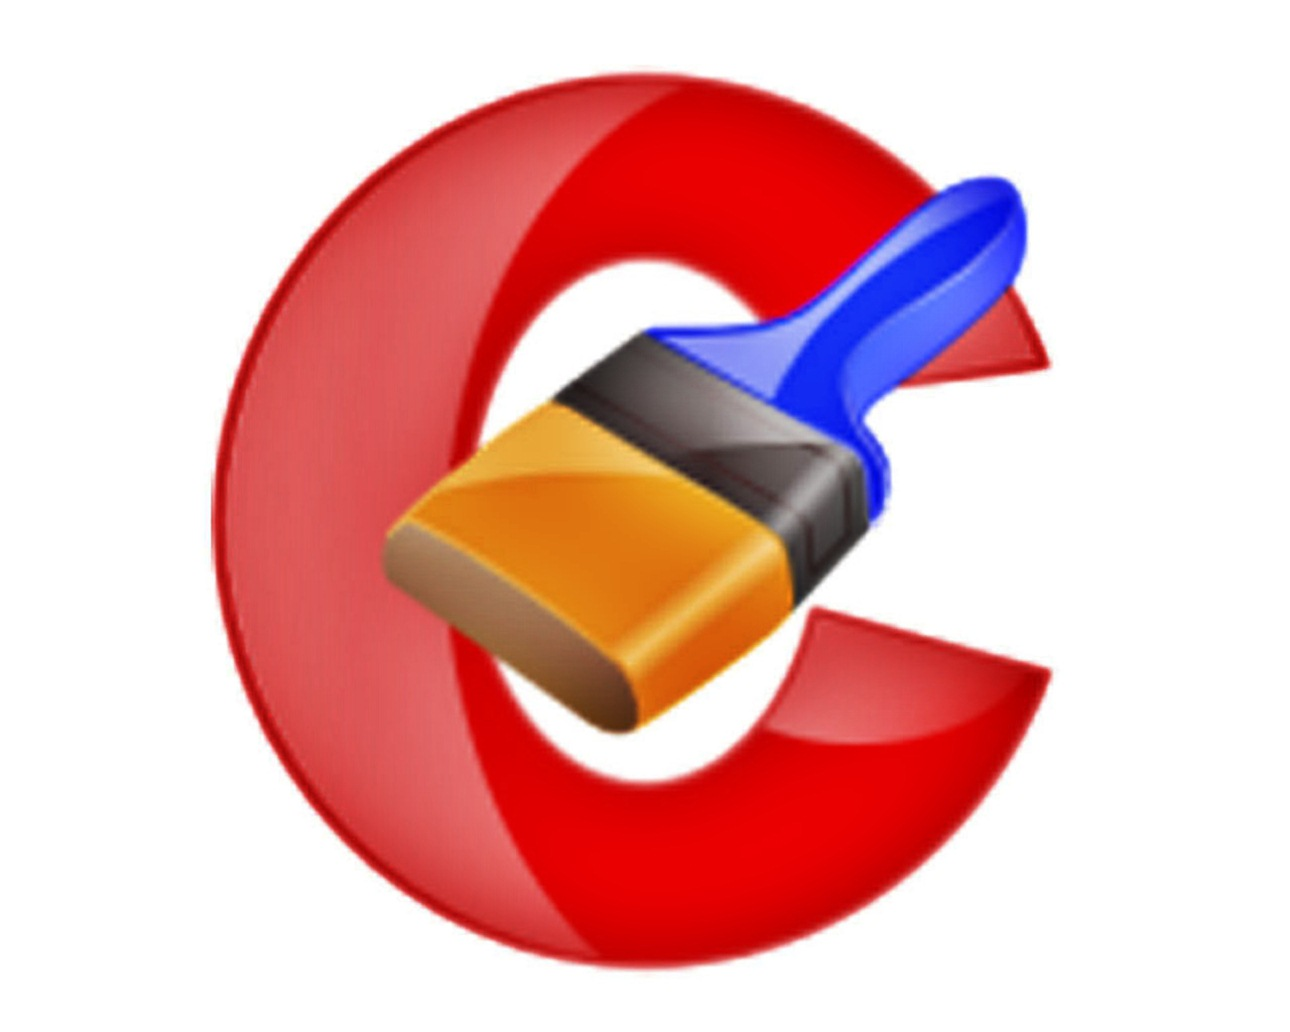 How To Use Ccleaner To Speed Up Computer And Free Disk Space